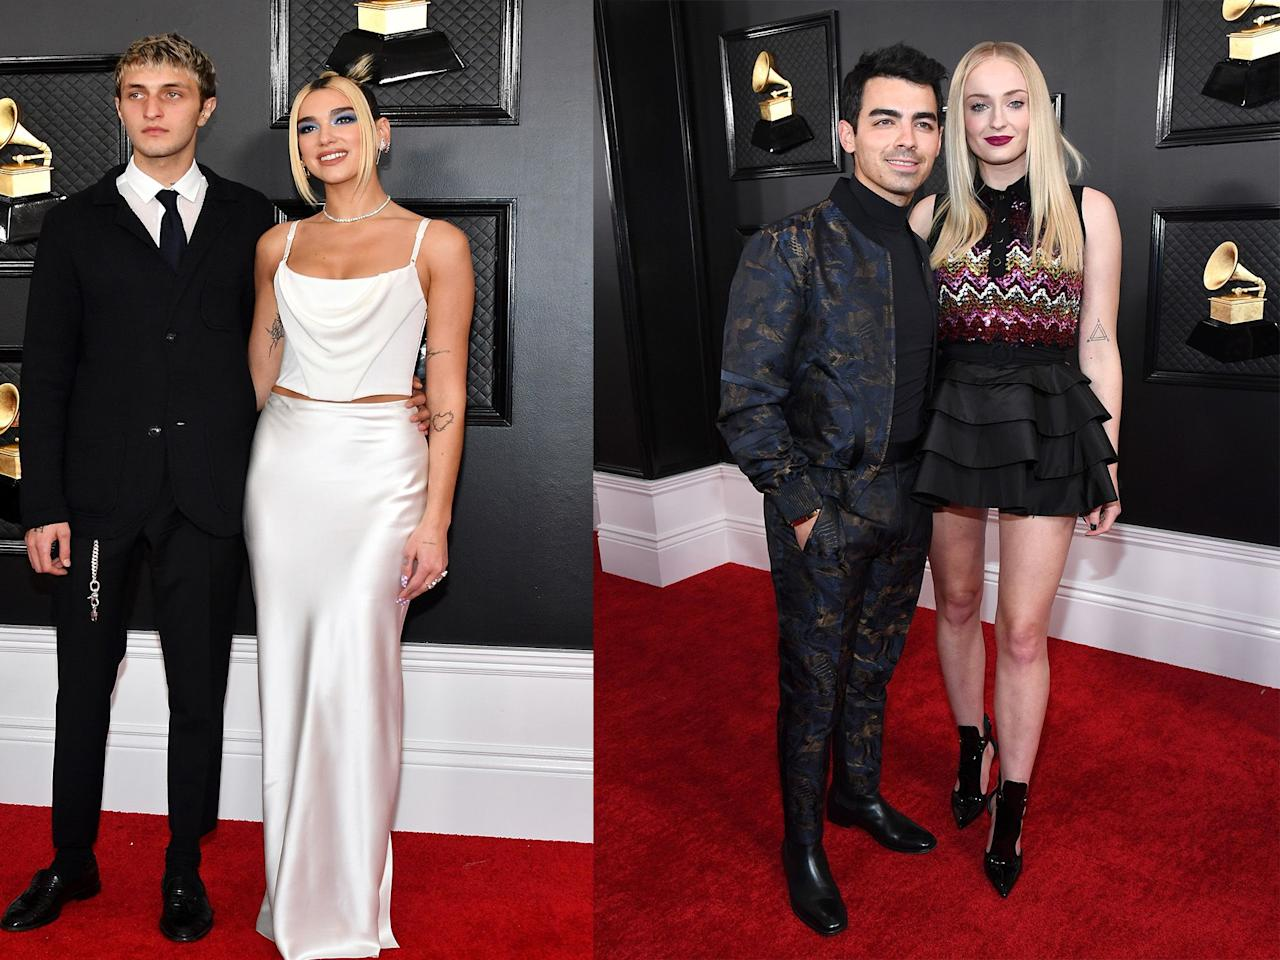 "<p>Sunday night's <a href=""https://www.cosmopolitan.com/uk/grammys/"" target=""_blank"">Grammys</a> featured the typical awards ceremony mix of <a href=""https://www.cosmopolitan.com/uk/entertainment/a30671364/most-awkward-grammys-moments-2020/"" target=""_blank"">painfully awkward moments</a>, <a href=""https://www.cosmopolitan.com/uk/fashion/celebrity/a30668166/ariana-grande-grammys-twitter/"" target=""_blank"">powerful fashion statements</a> and a, uh, <a href=""https://www.cosmopolitan.com/uk/entertainment/a30672046/the-grammys-man-skeleton-makeup/"" target=""_blank"">random man in the audience wearing skeleton makeup</a> (there's always one). Of course, the red carpet was also awash with some of our favourite celebrity couples. From Joe Jonas and Sophie Turner to Chrissy Teigen and John Legend, check out the stars who were looking all pretty and in love on the red carpet in LA last night. </p>"